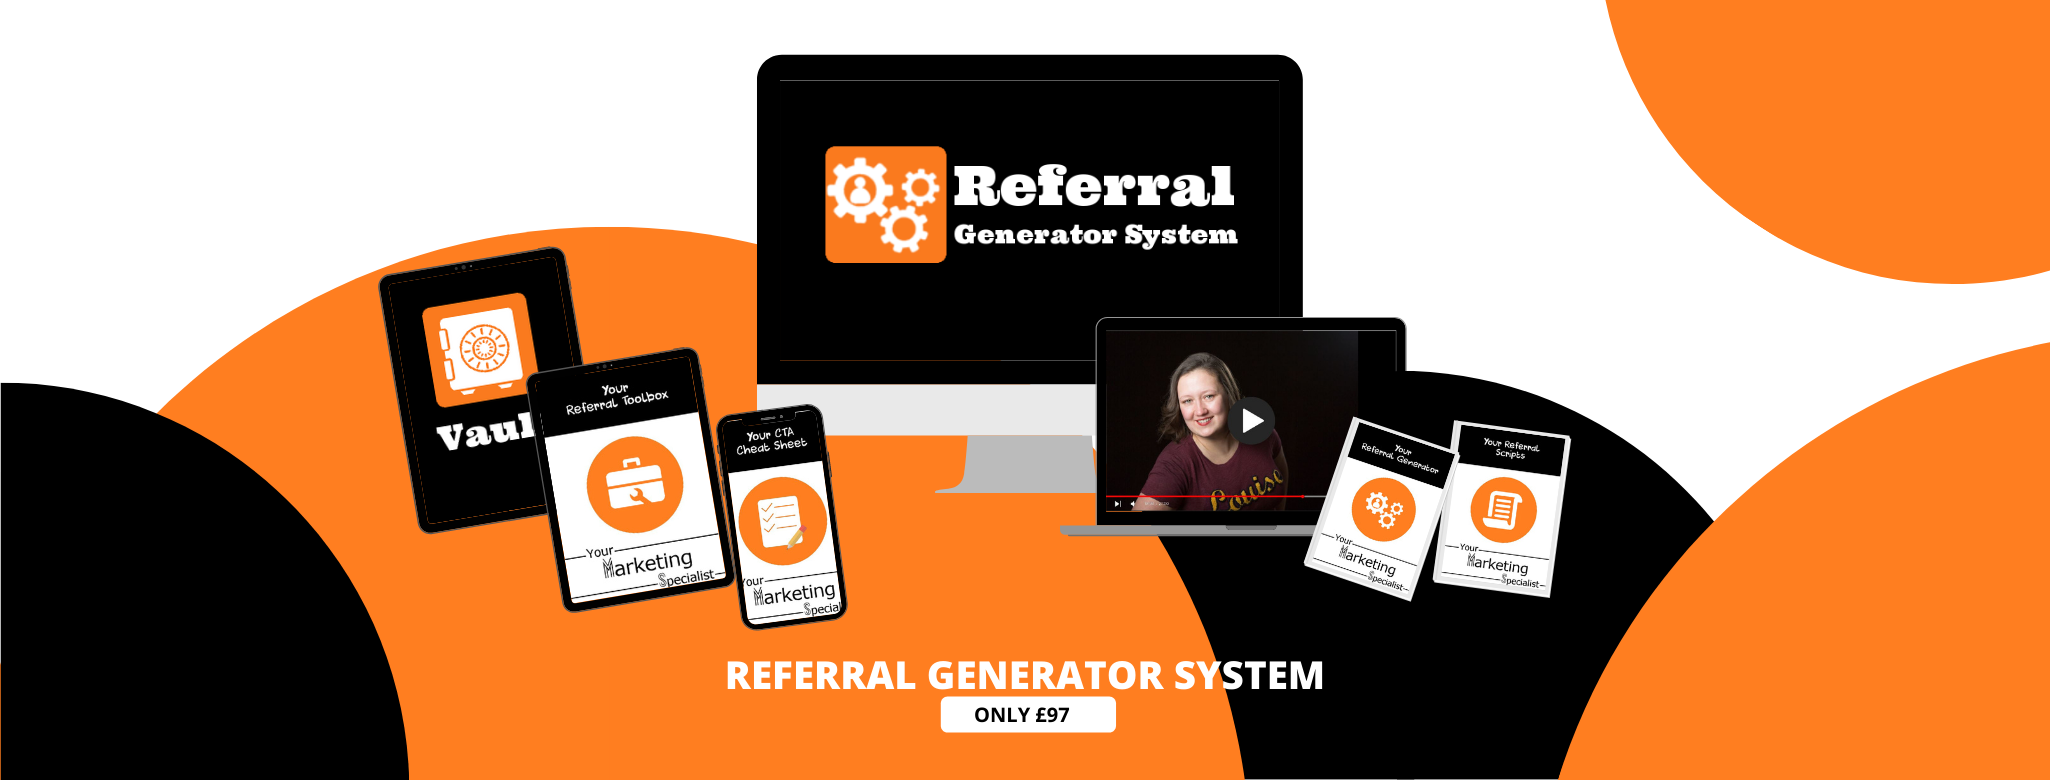 referral generator